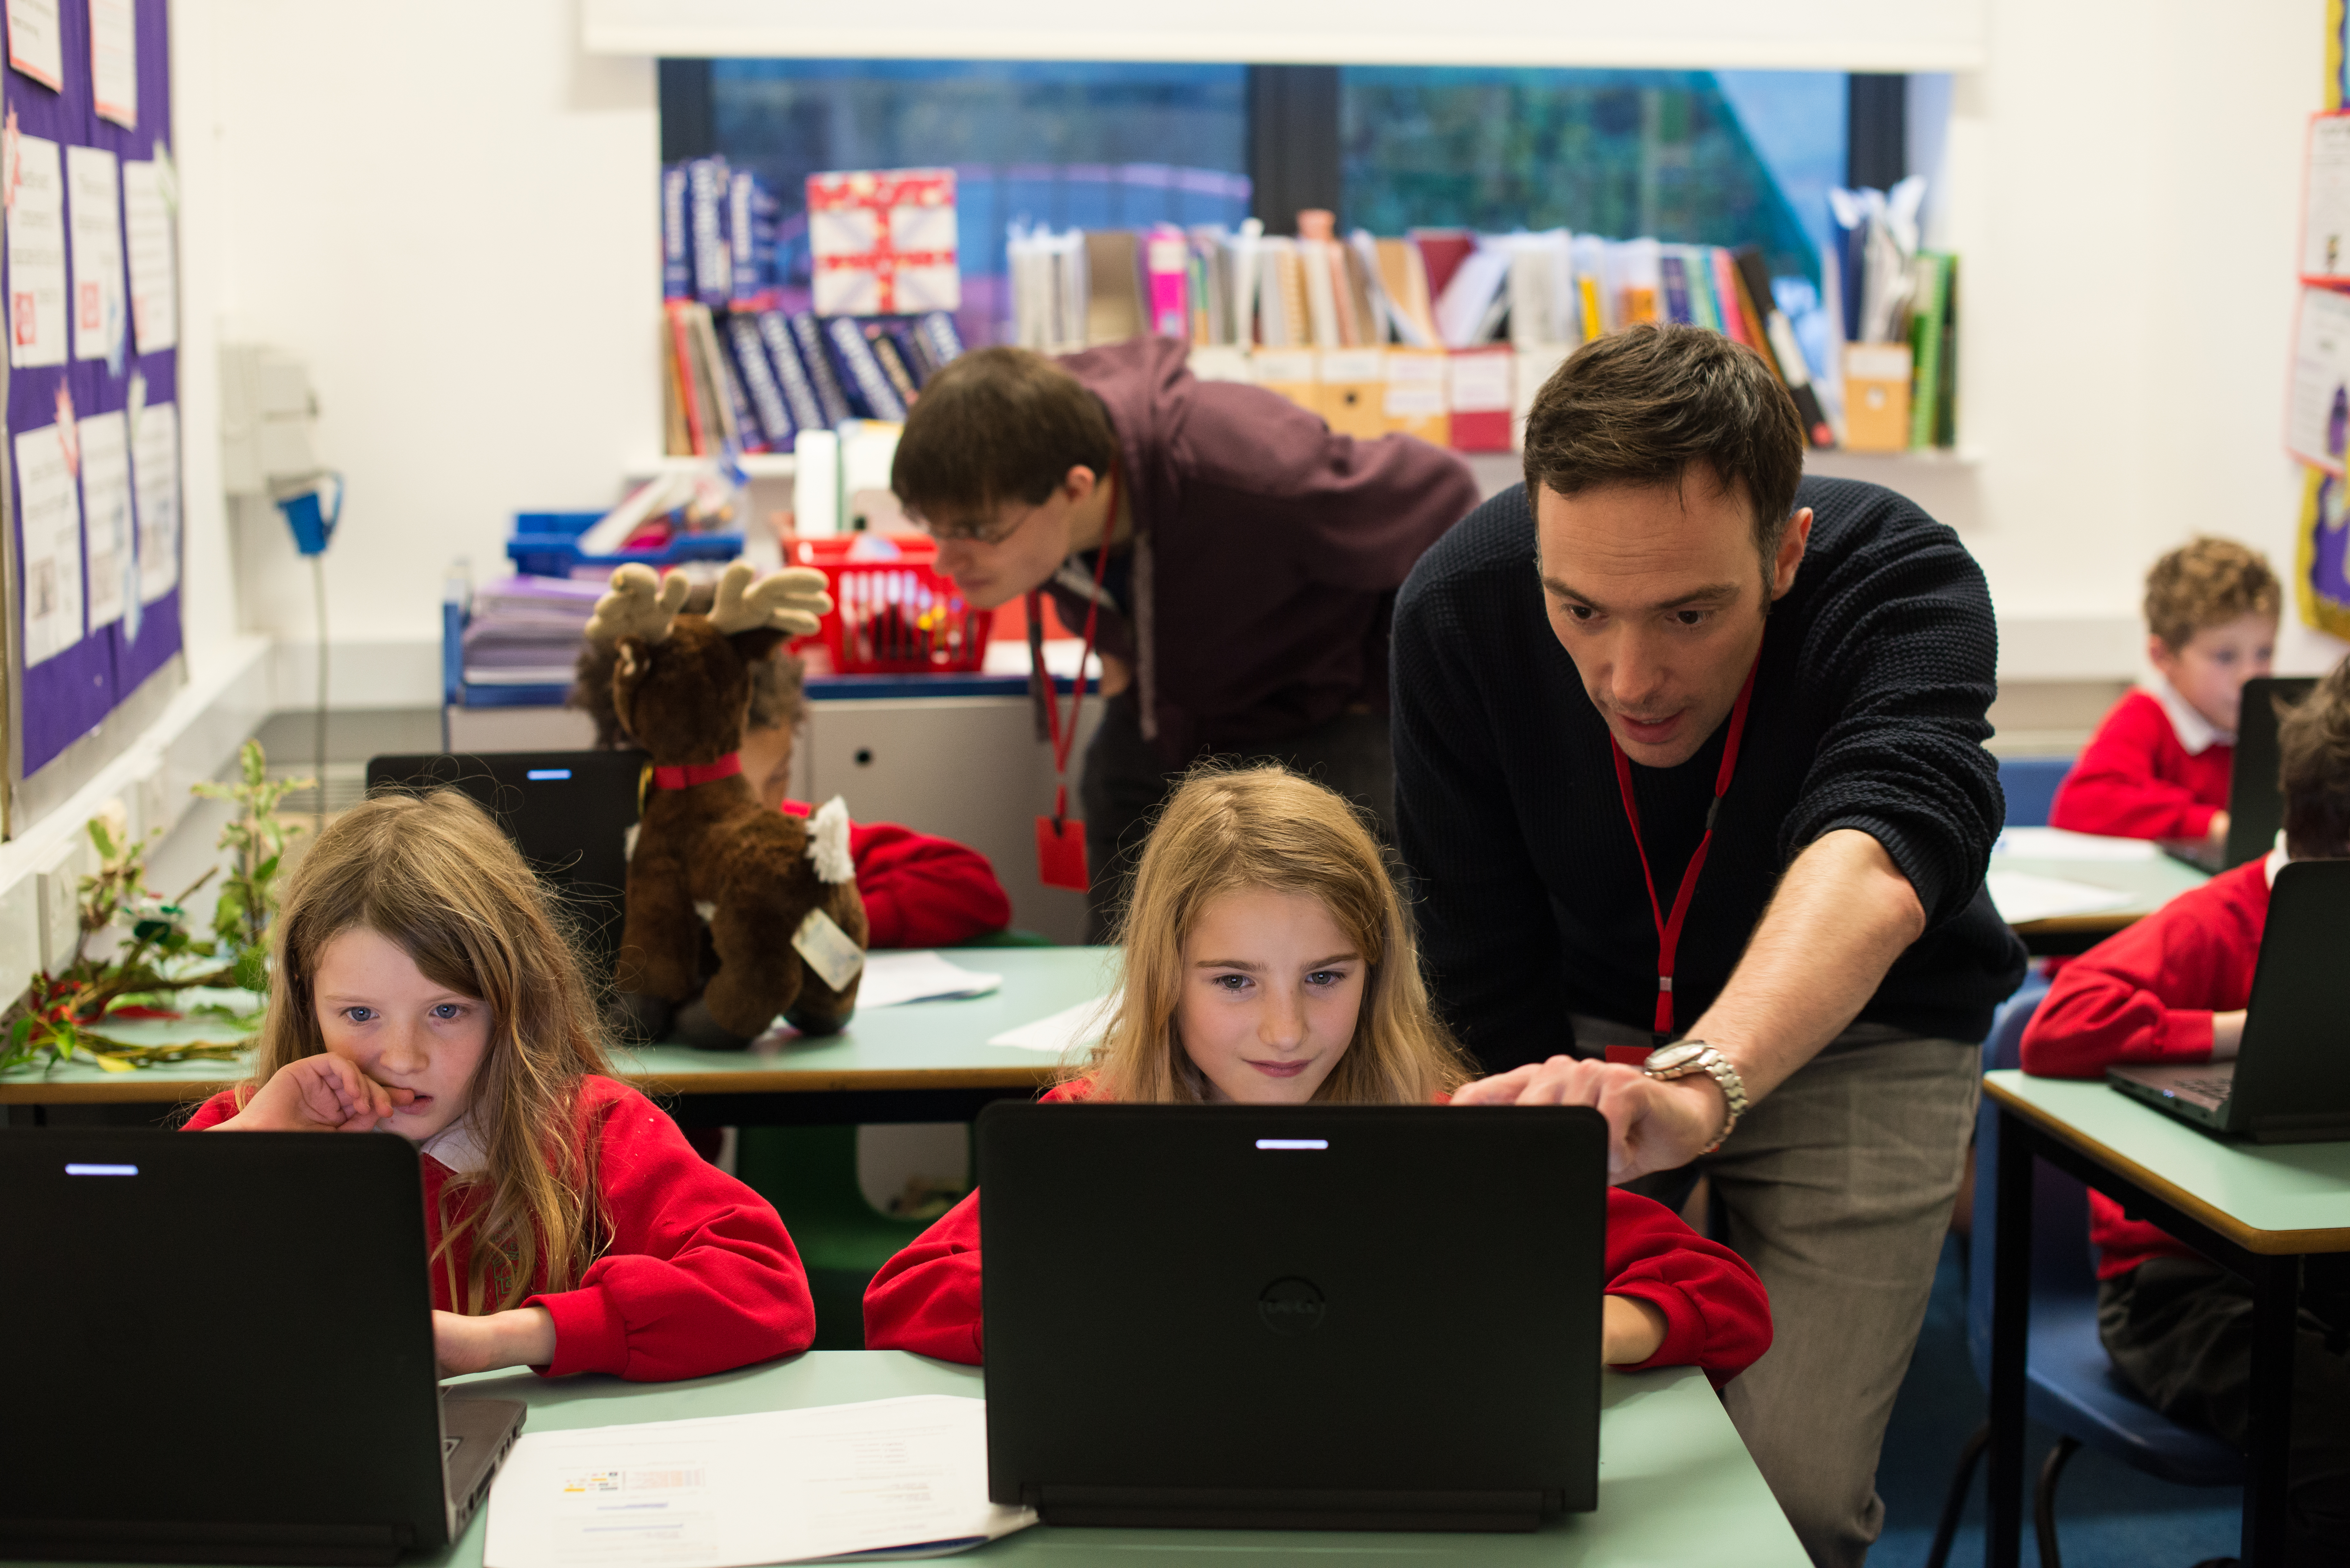 The National Centre for Computing Education: your questions answered